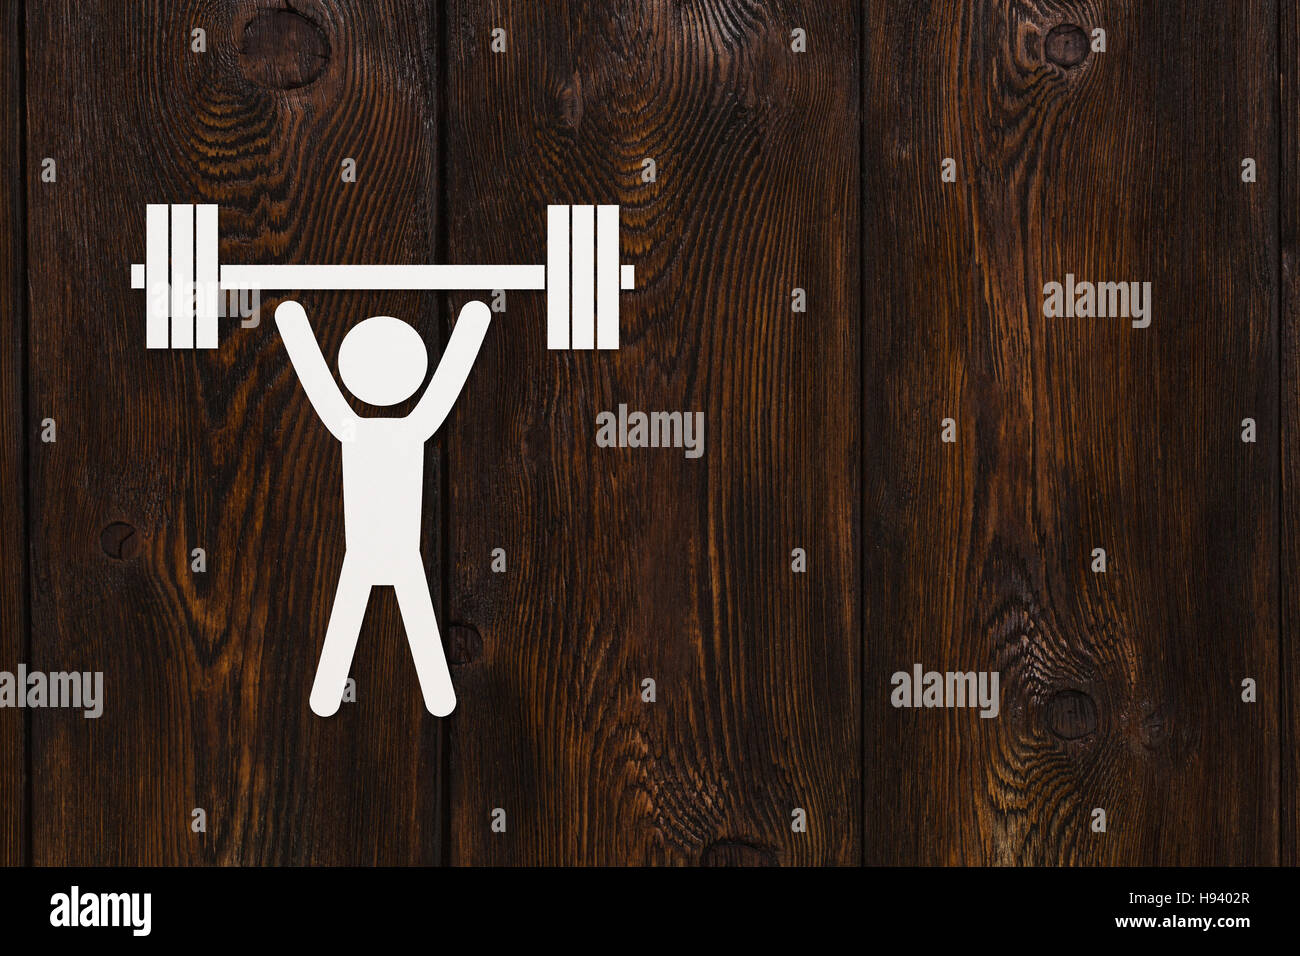 Paper man with weights. Sport, fitness concept. Copyspace, wooden background - Stock Image